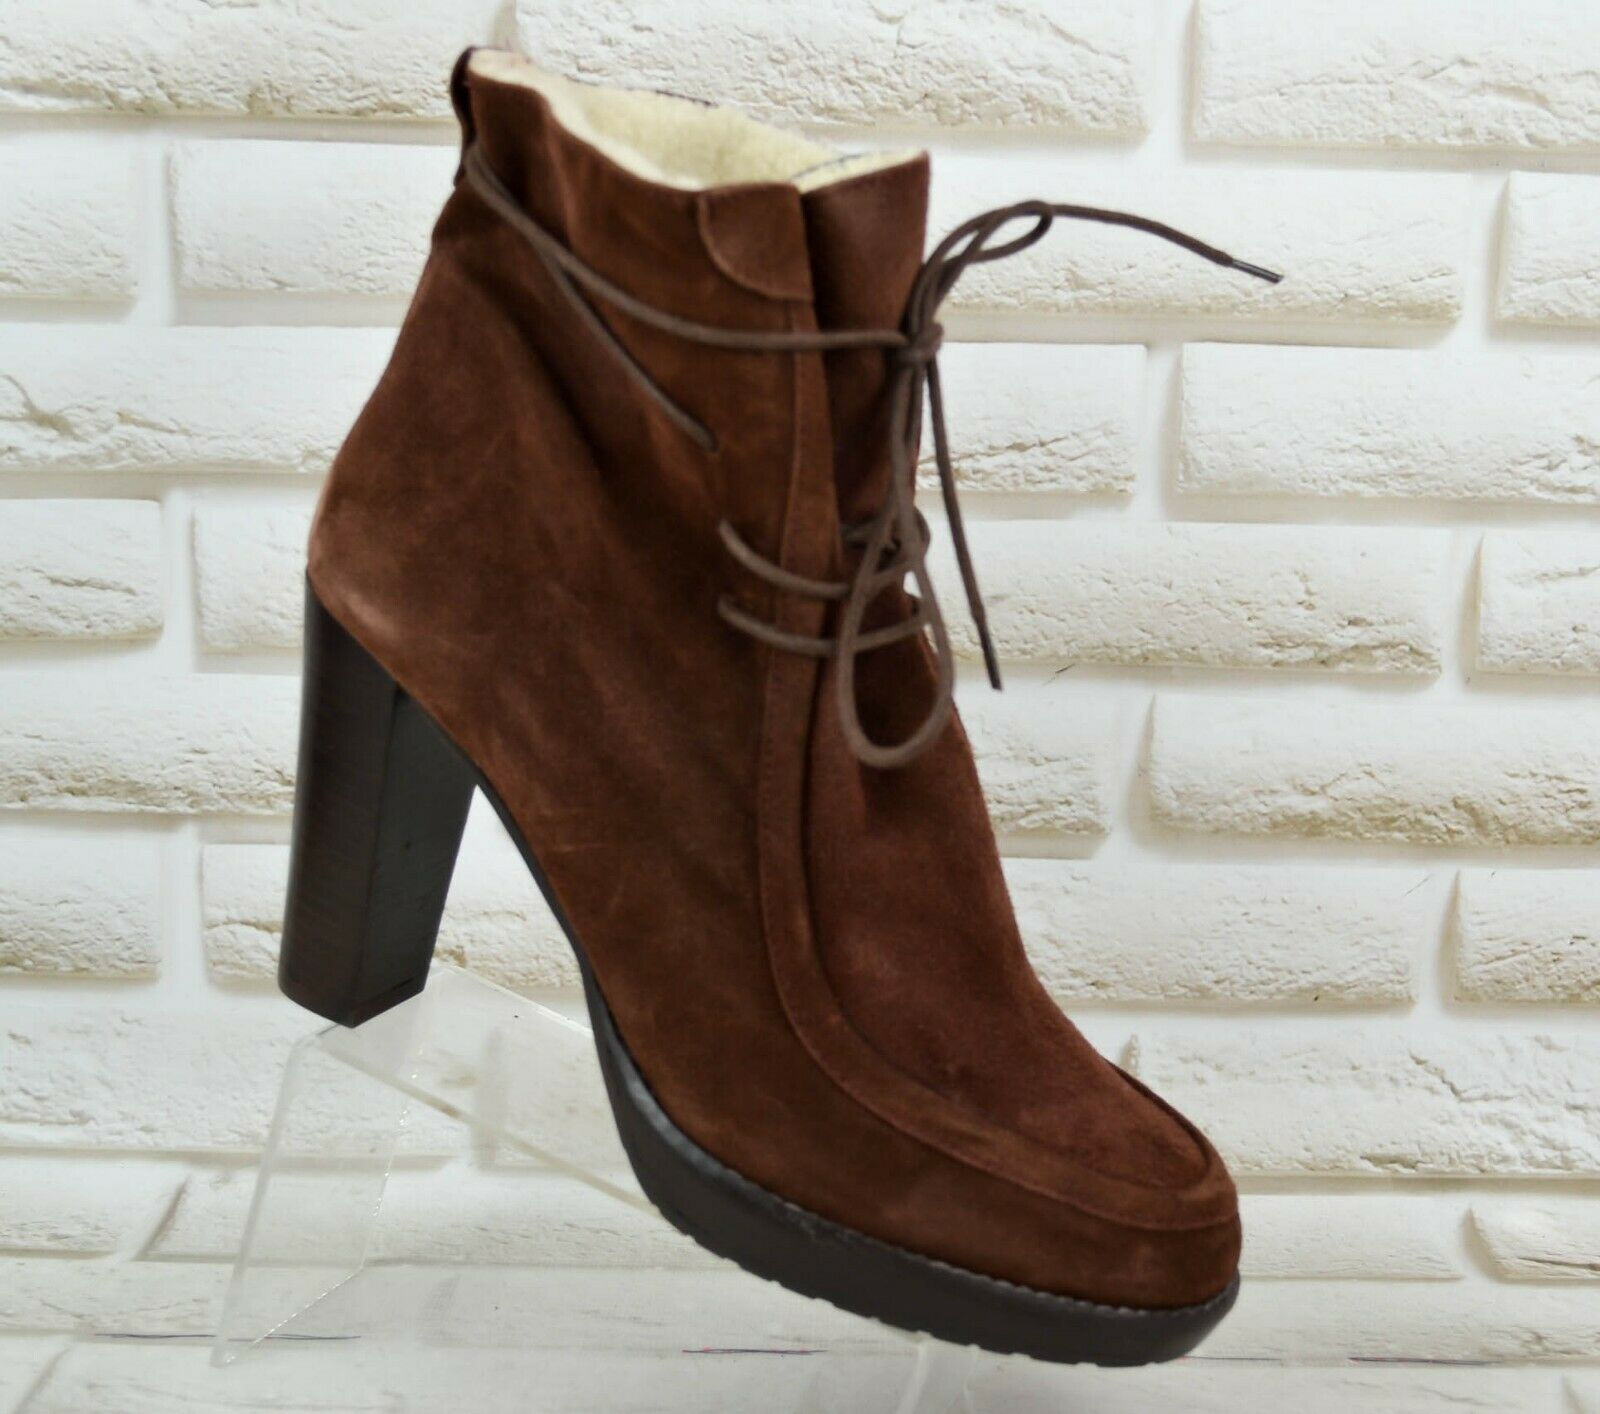 HOBBS N.W.3 Womens Brown Suede Heeled Boots shoes Made In Spain Size 7 UK 40 EU